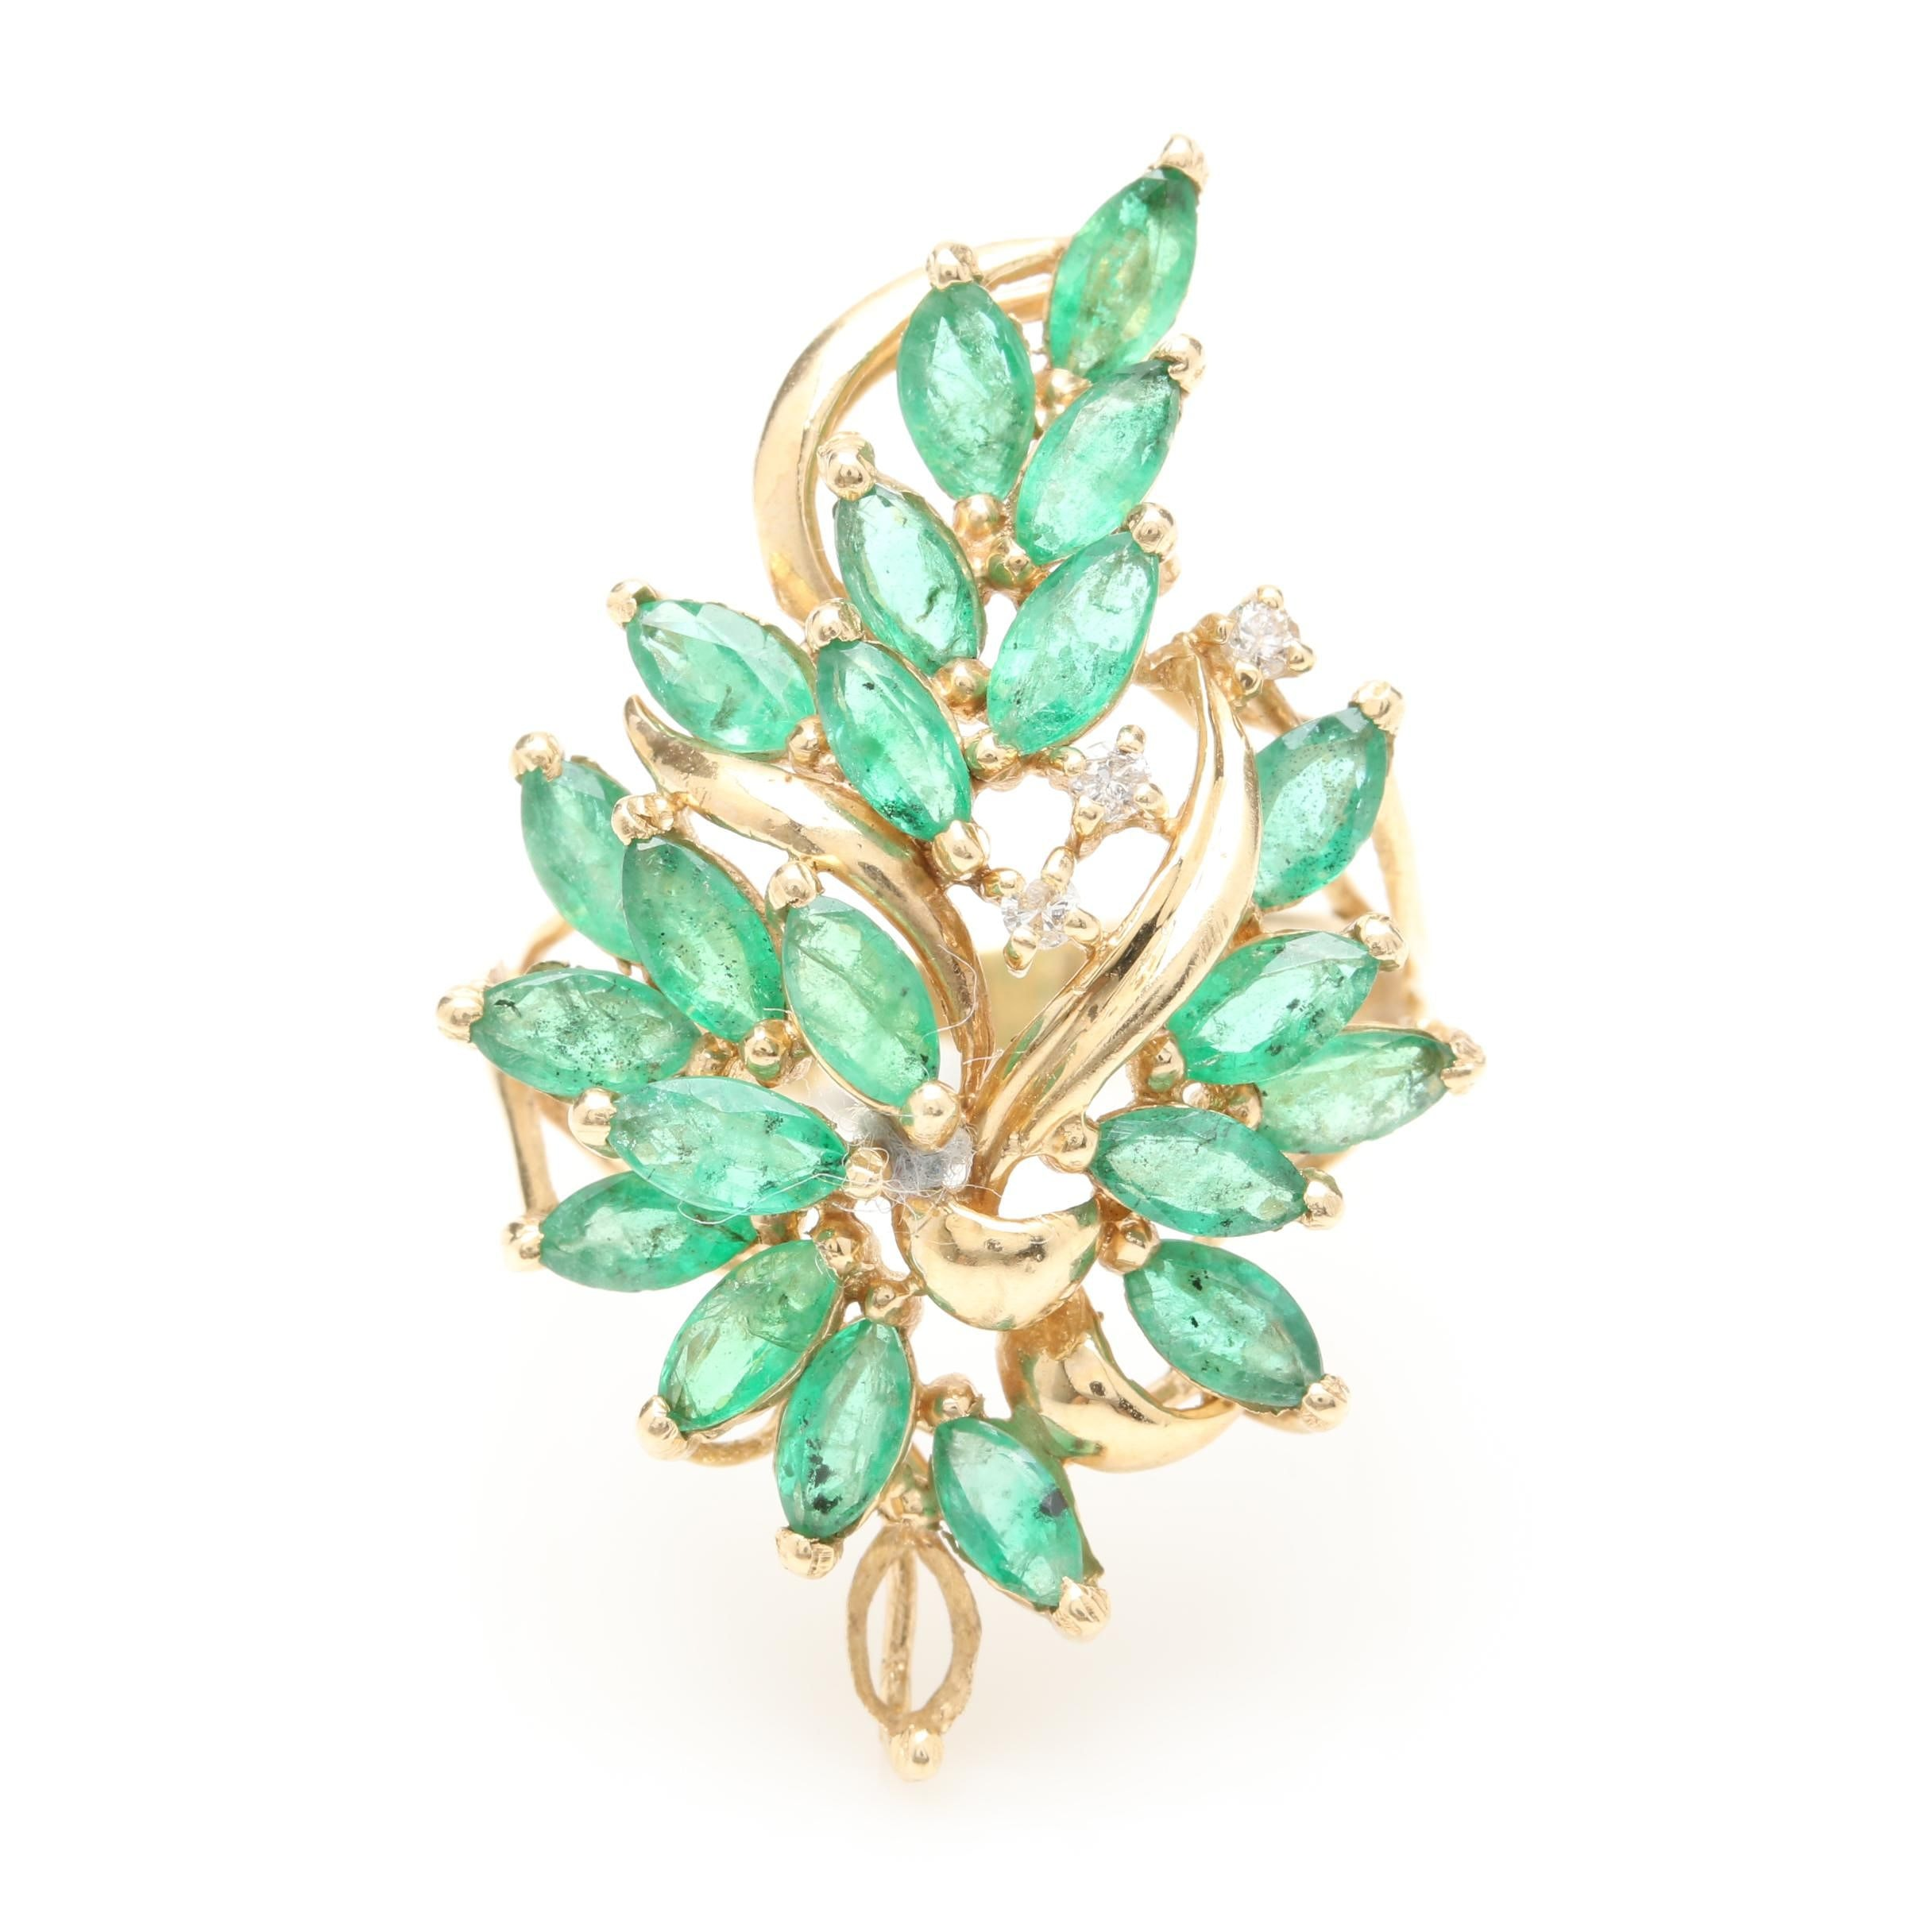 Circa 1950s - 1960s 14K Yellow Gold Emerald and Diamond Foliate Ring